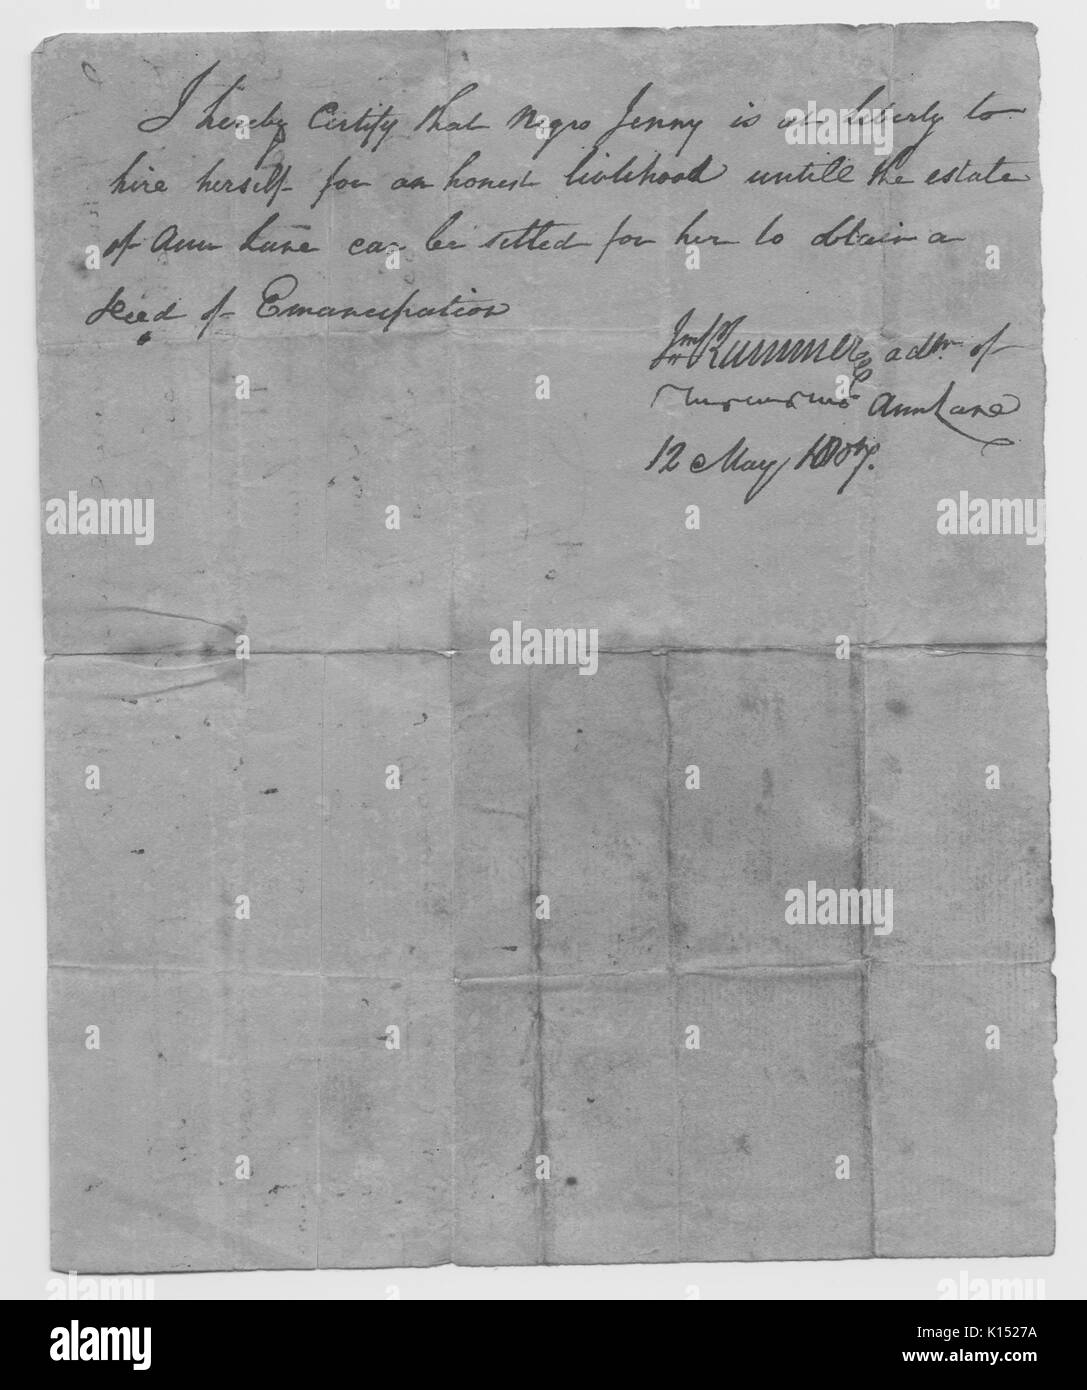 A letter that states that a slave named Jenny is allowed to find herself work, she is to work until the estate of her owner is settled at which point she can obtain a deed of emancipation, 1807. From the New York Public Library. - Stock Image